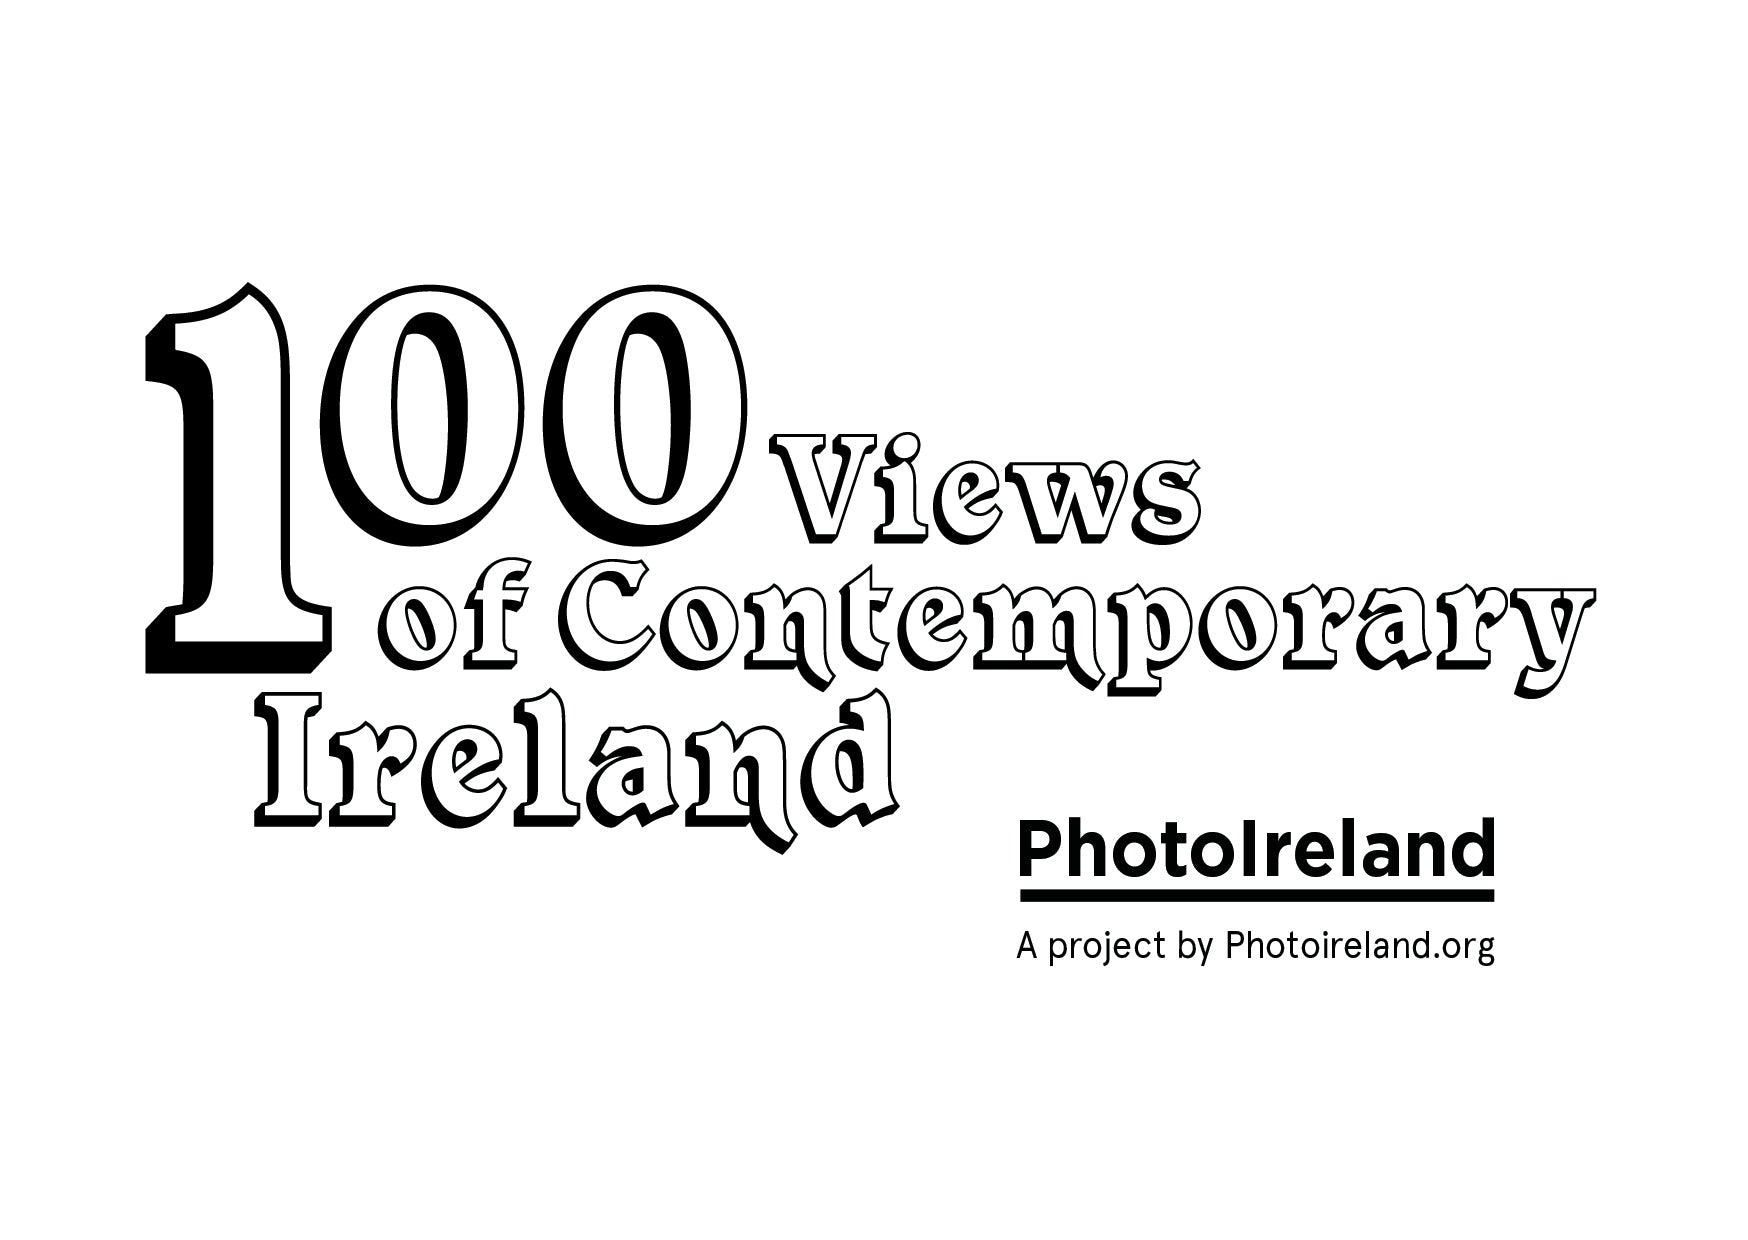 Linda Brownlee, 100 Views of Contemporary Ireland